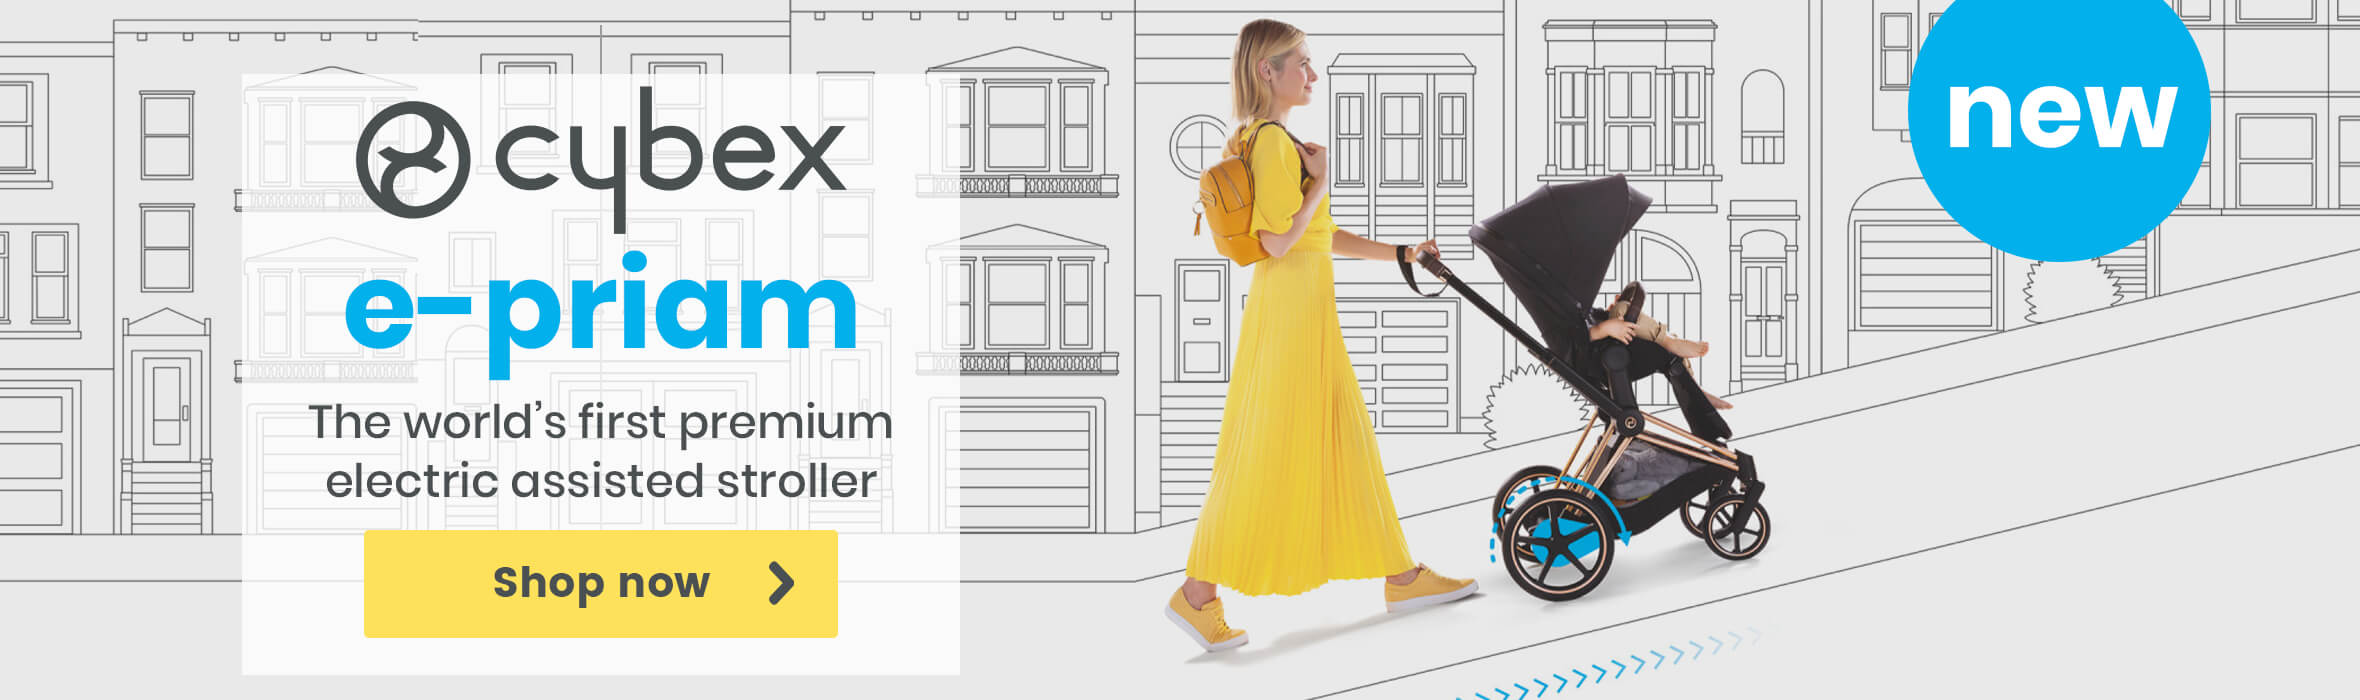 NEW - Cybex e-priam Electric Assisted Stroller